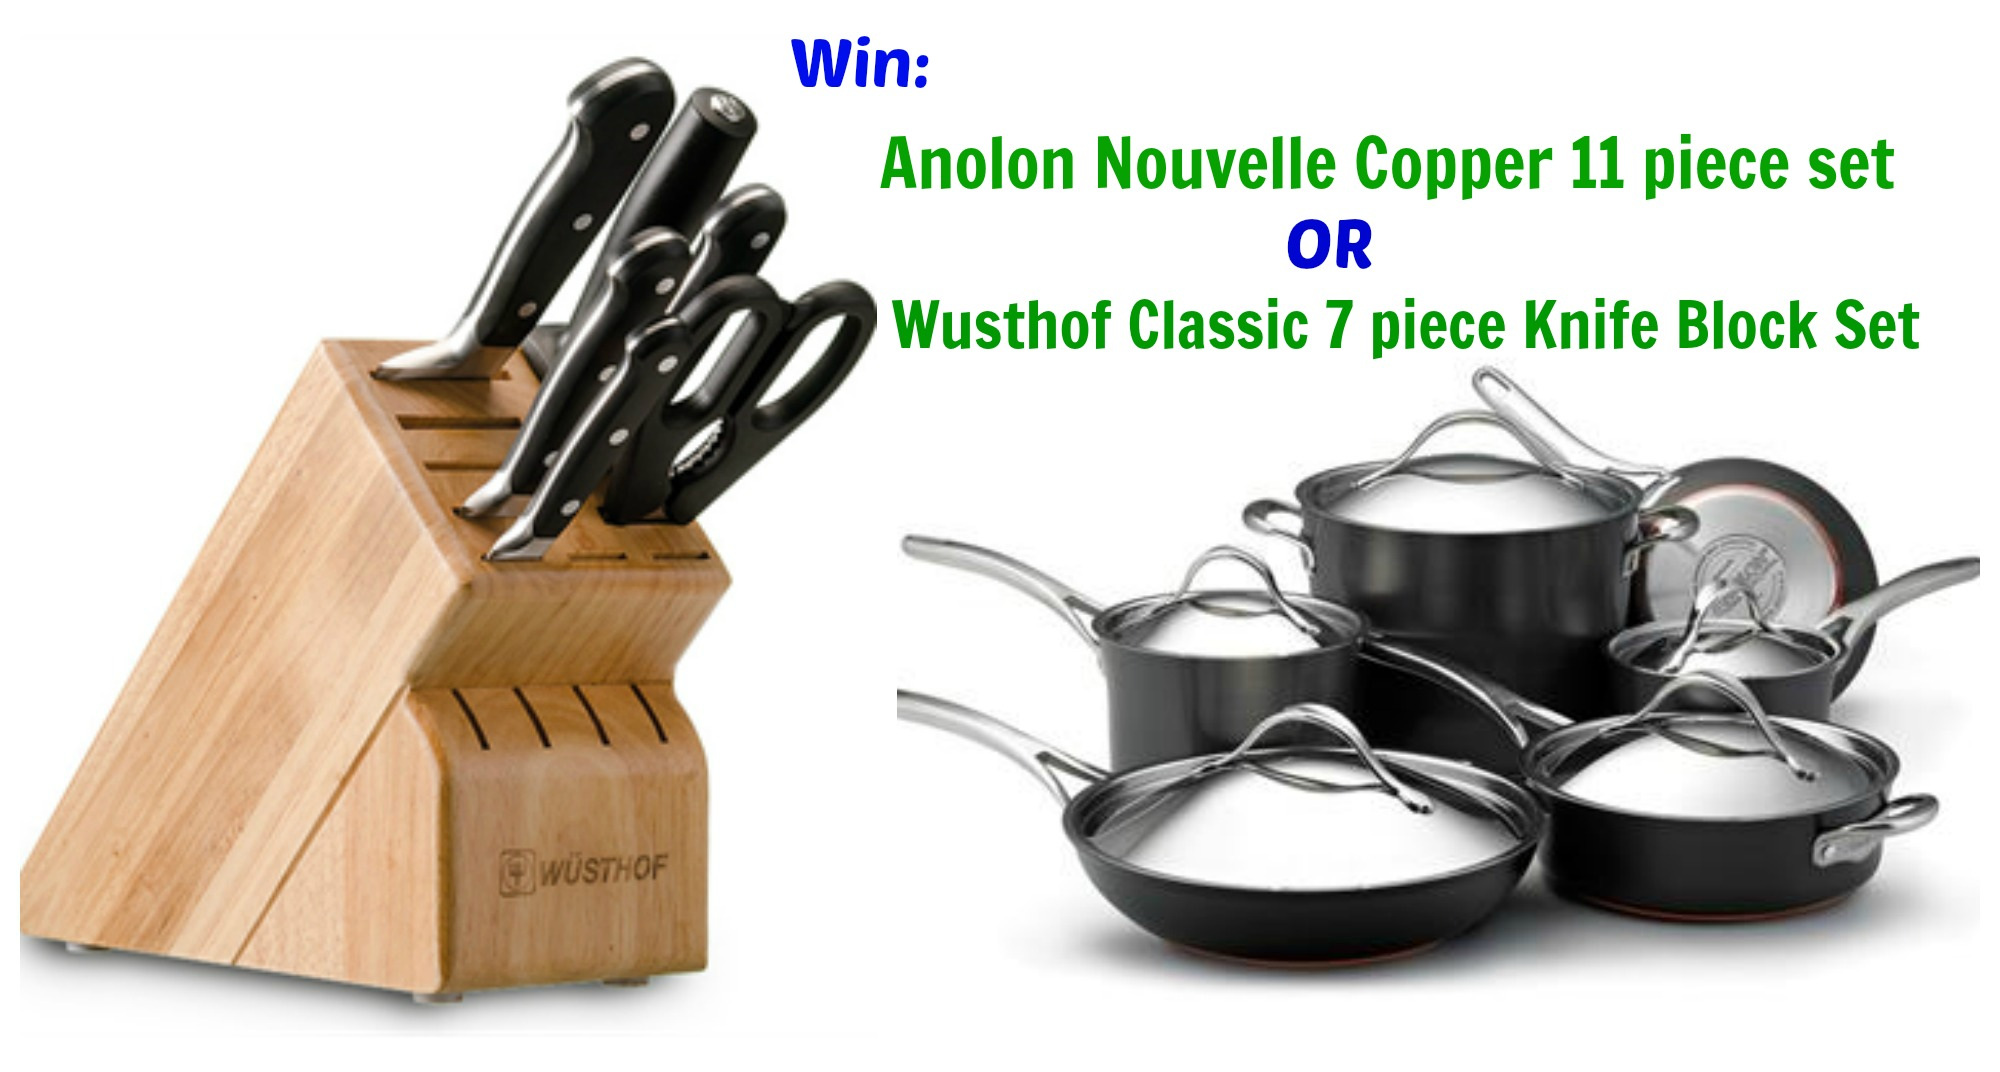 Anolon + Wusthof giveaway!